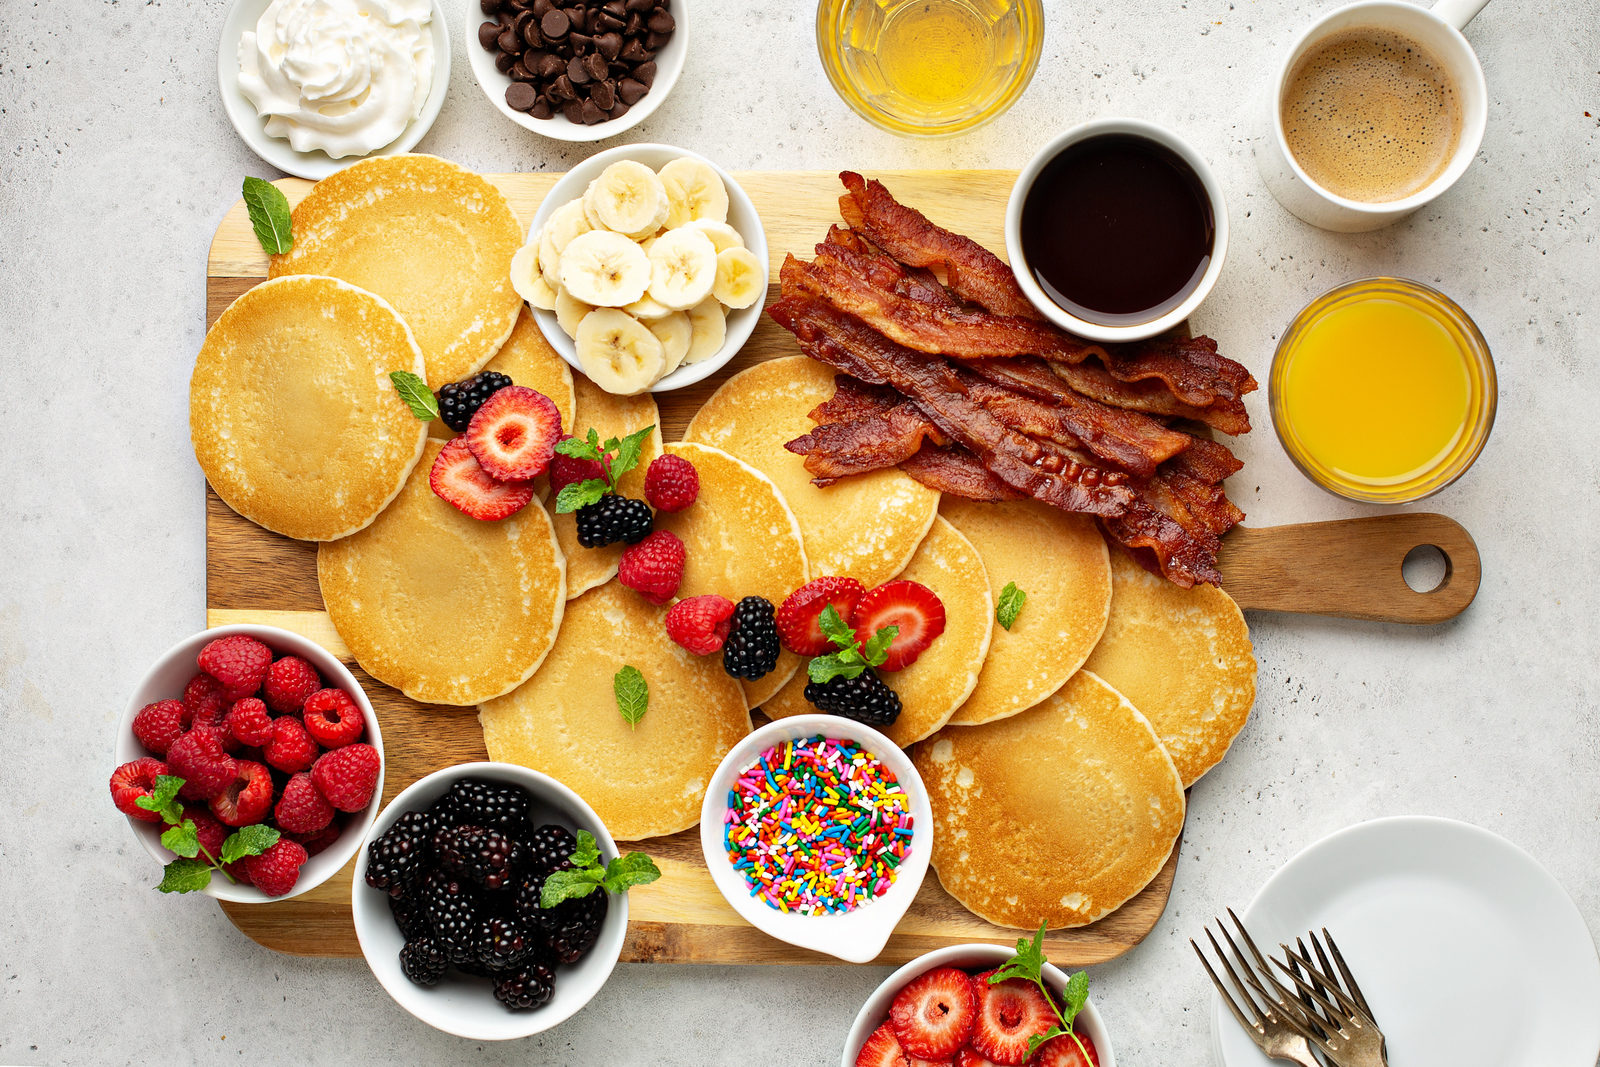 How To Build A Pancake Platter